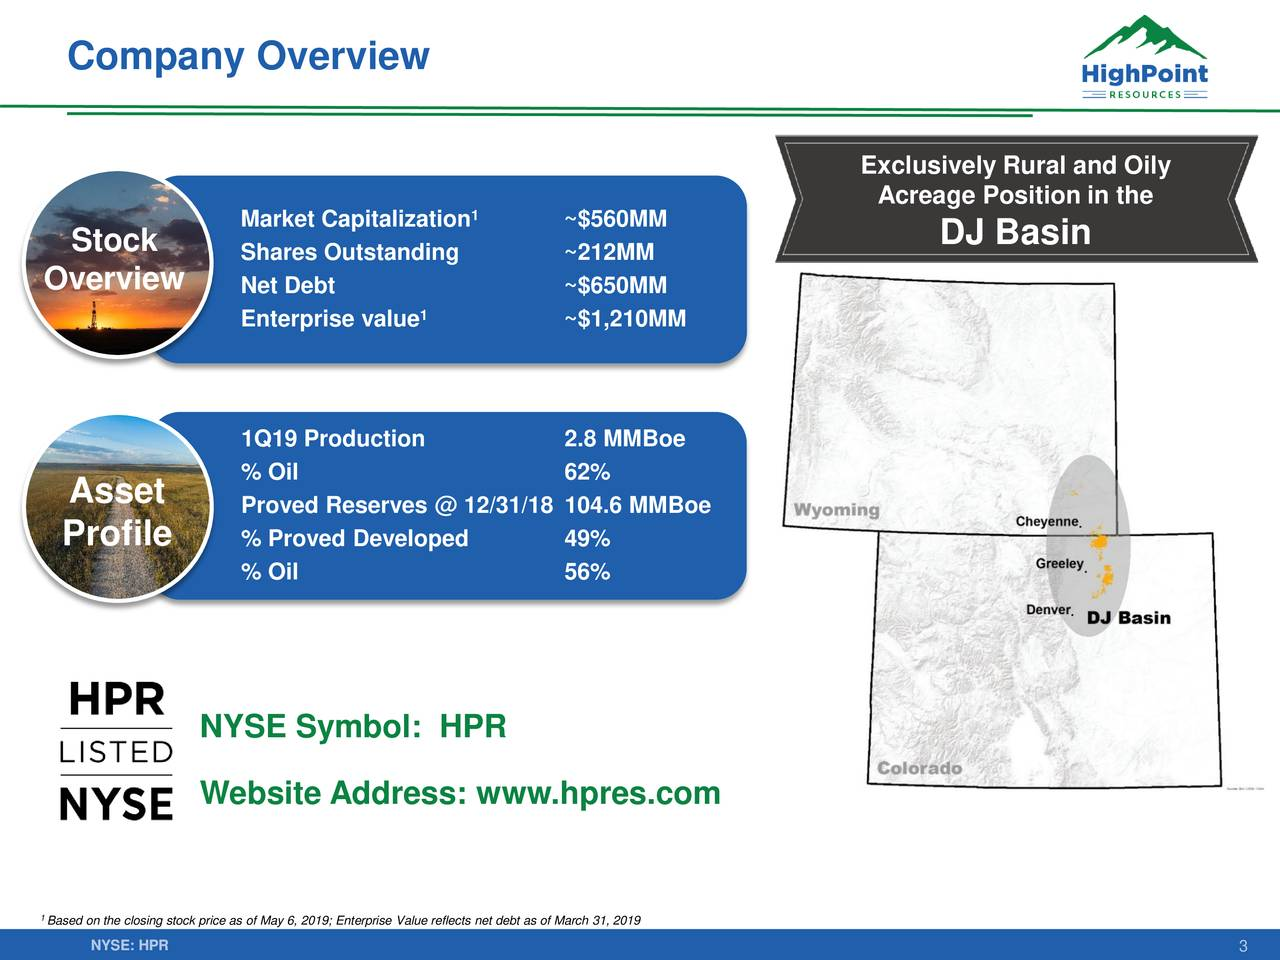 Exclusively Rural and Oily Acreage Position in the Market Capitalization ~$560MM Stock DJ Basin Shares Outstanding ~212MM Overview Net Debt ~$650MM Enterprise value ~$1,210MM 1Q19 Production 2.8 MMBoe % Oil 62% Asset Proved Reserves @ 12/31/18 104.6 MMBoe Profile % Proved Developed 49% % Oil 56% NYSE Symbol: HPR Website Address: www.hpres.com 1Based on the closing stock price as of May 6, 2019; Enterprise Value reflects net debt as of March 31, 2019